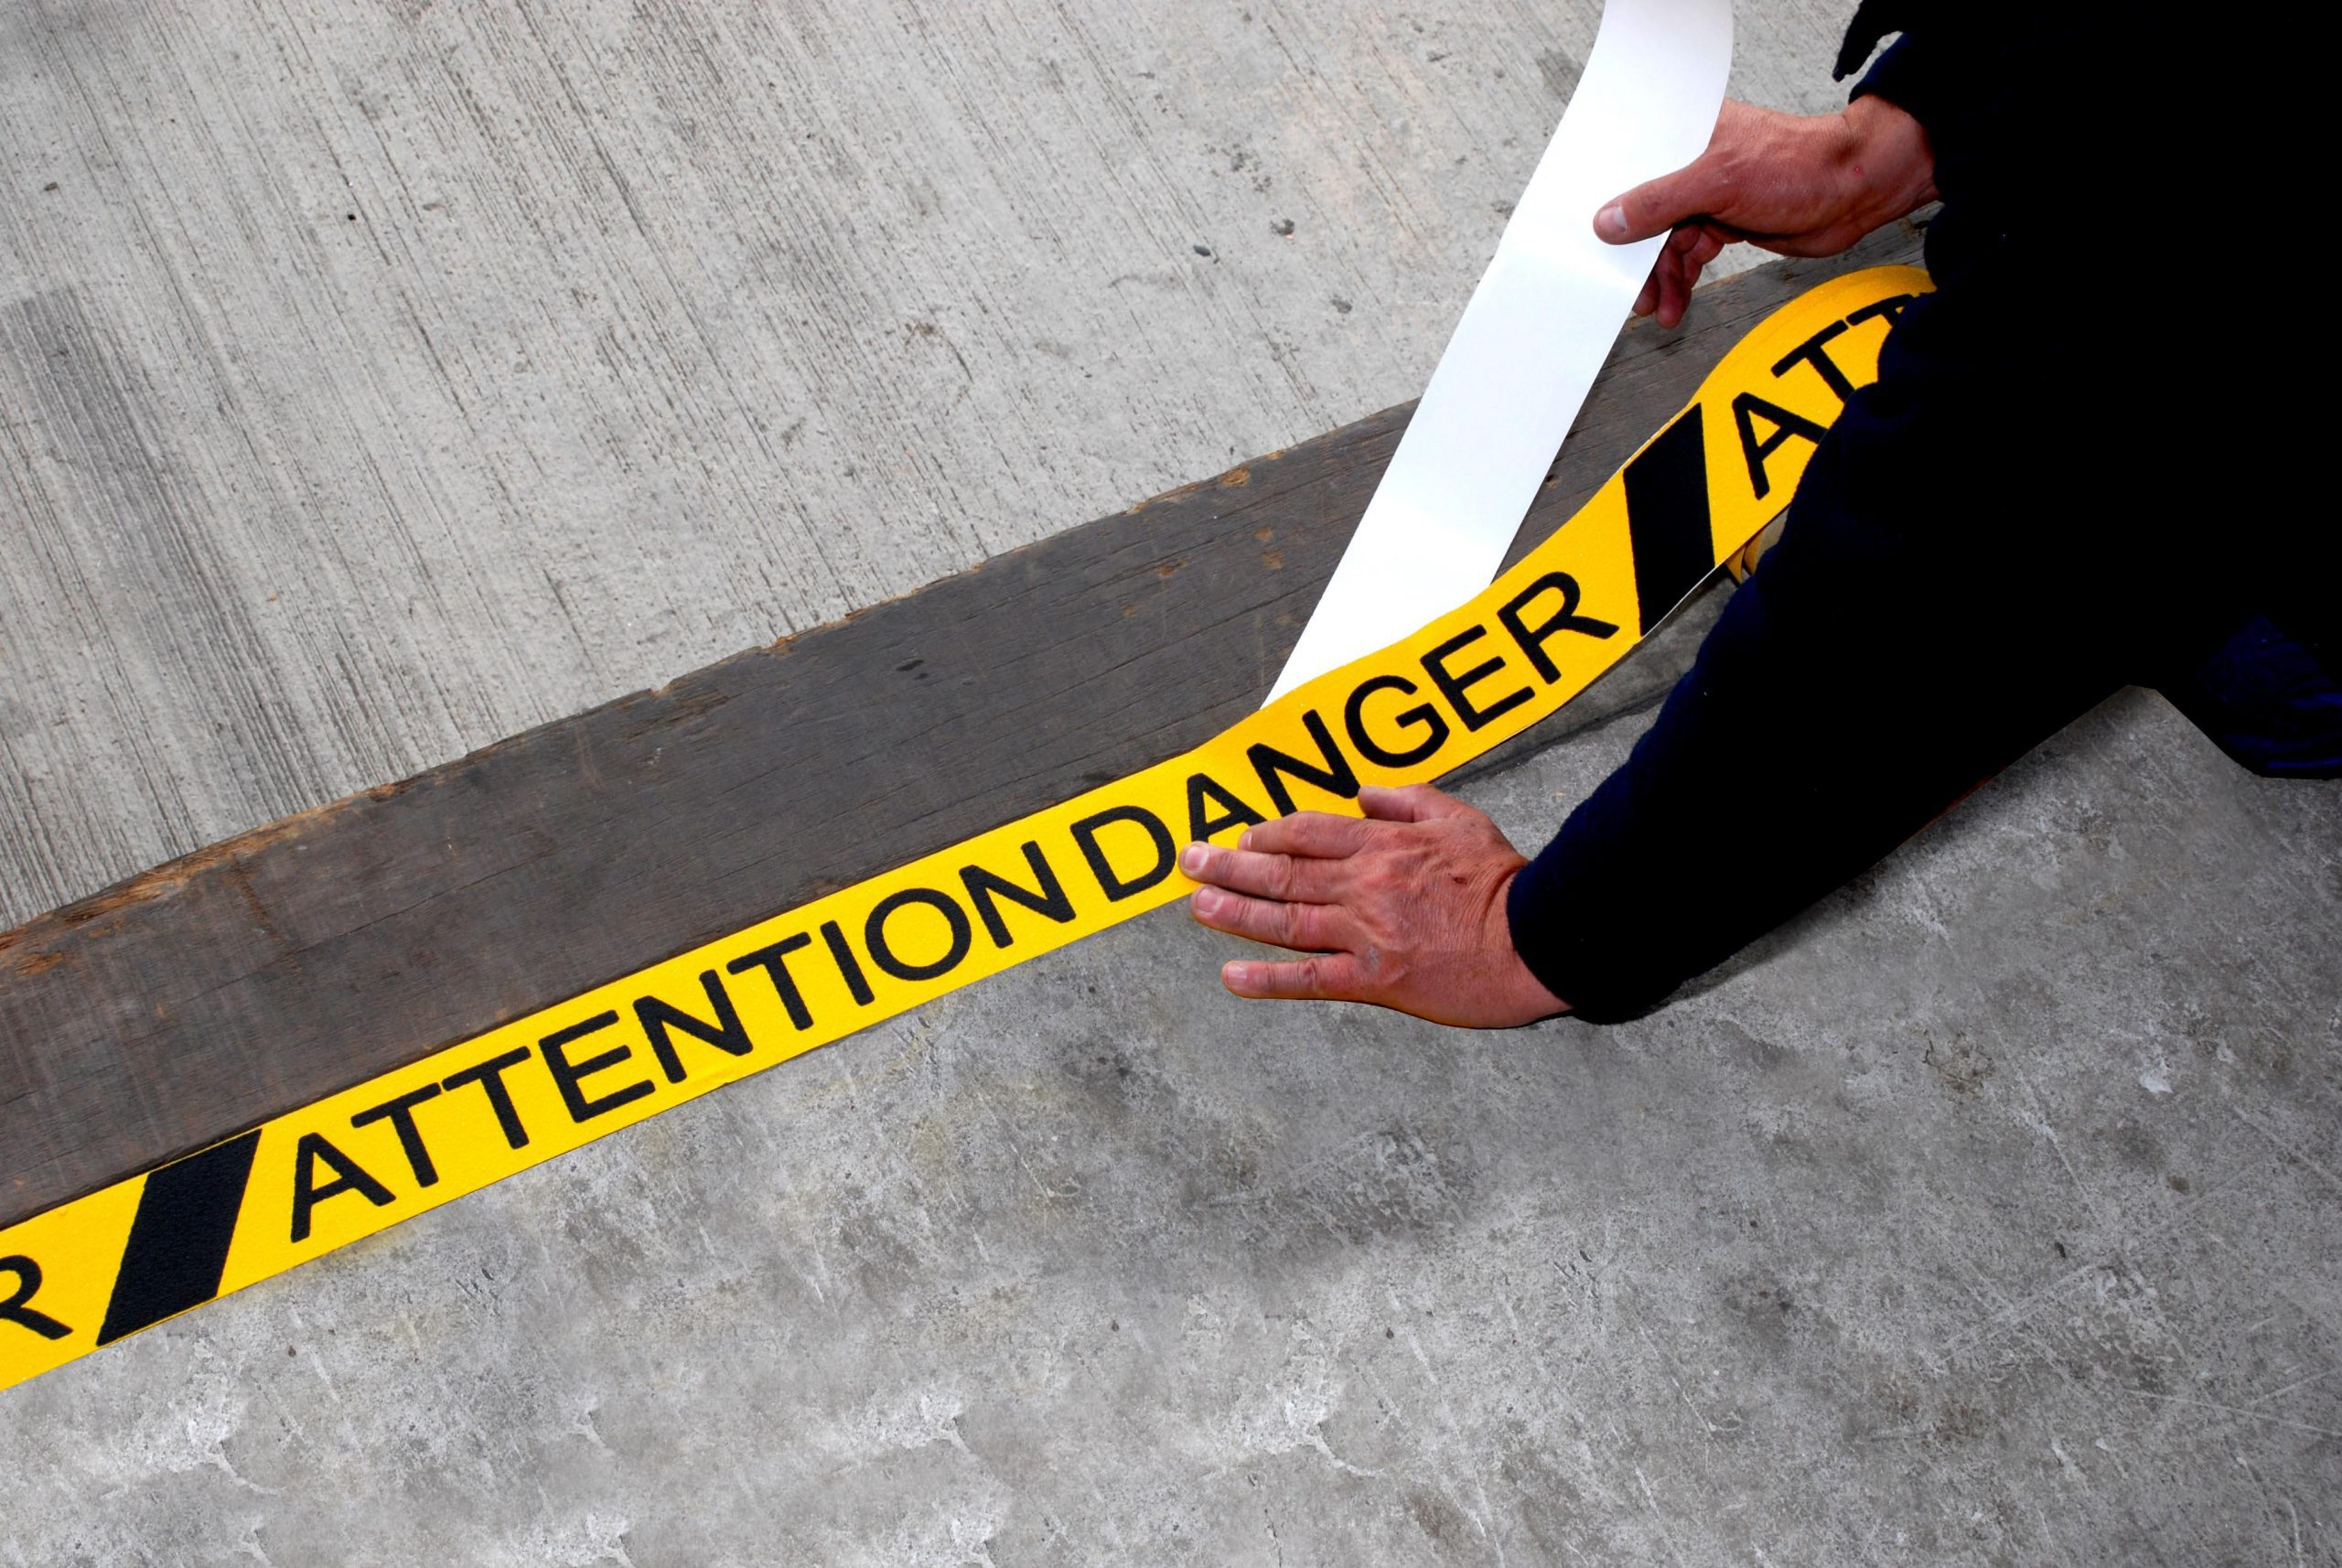 _305377831H3417-Attention-Danger-Printed-Anti-Slip-Warning-Tape-Being-Applied-50mm-1